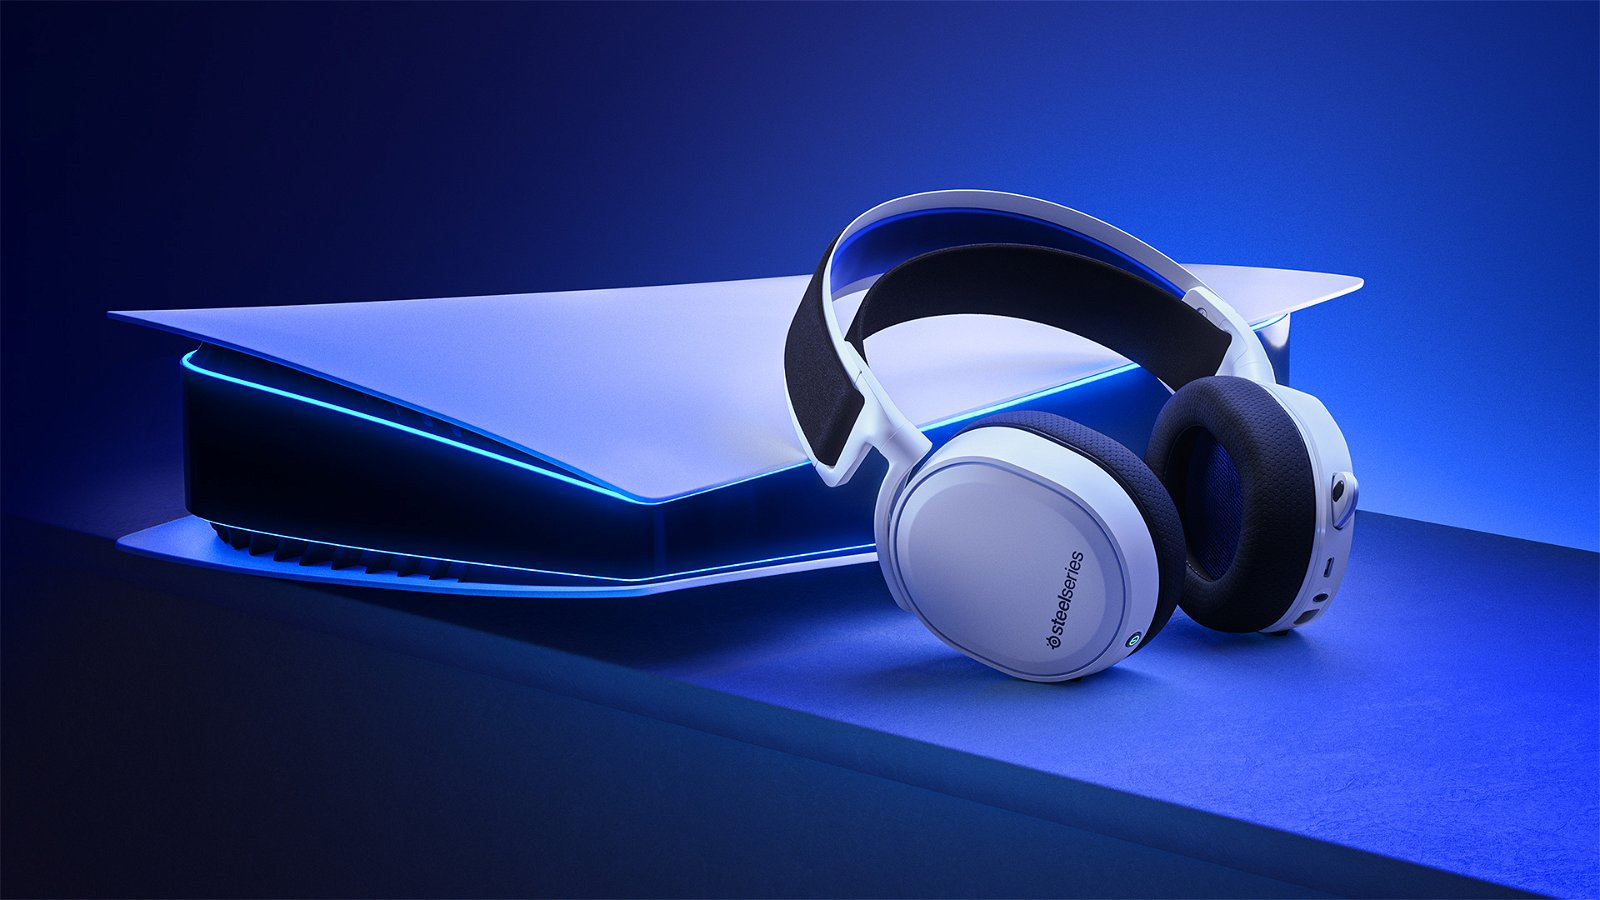 Arctis 7X and 7P Introduce Next-Gen of SteelSeries Sound 2